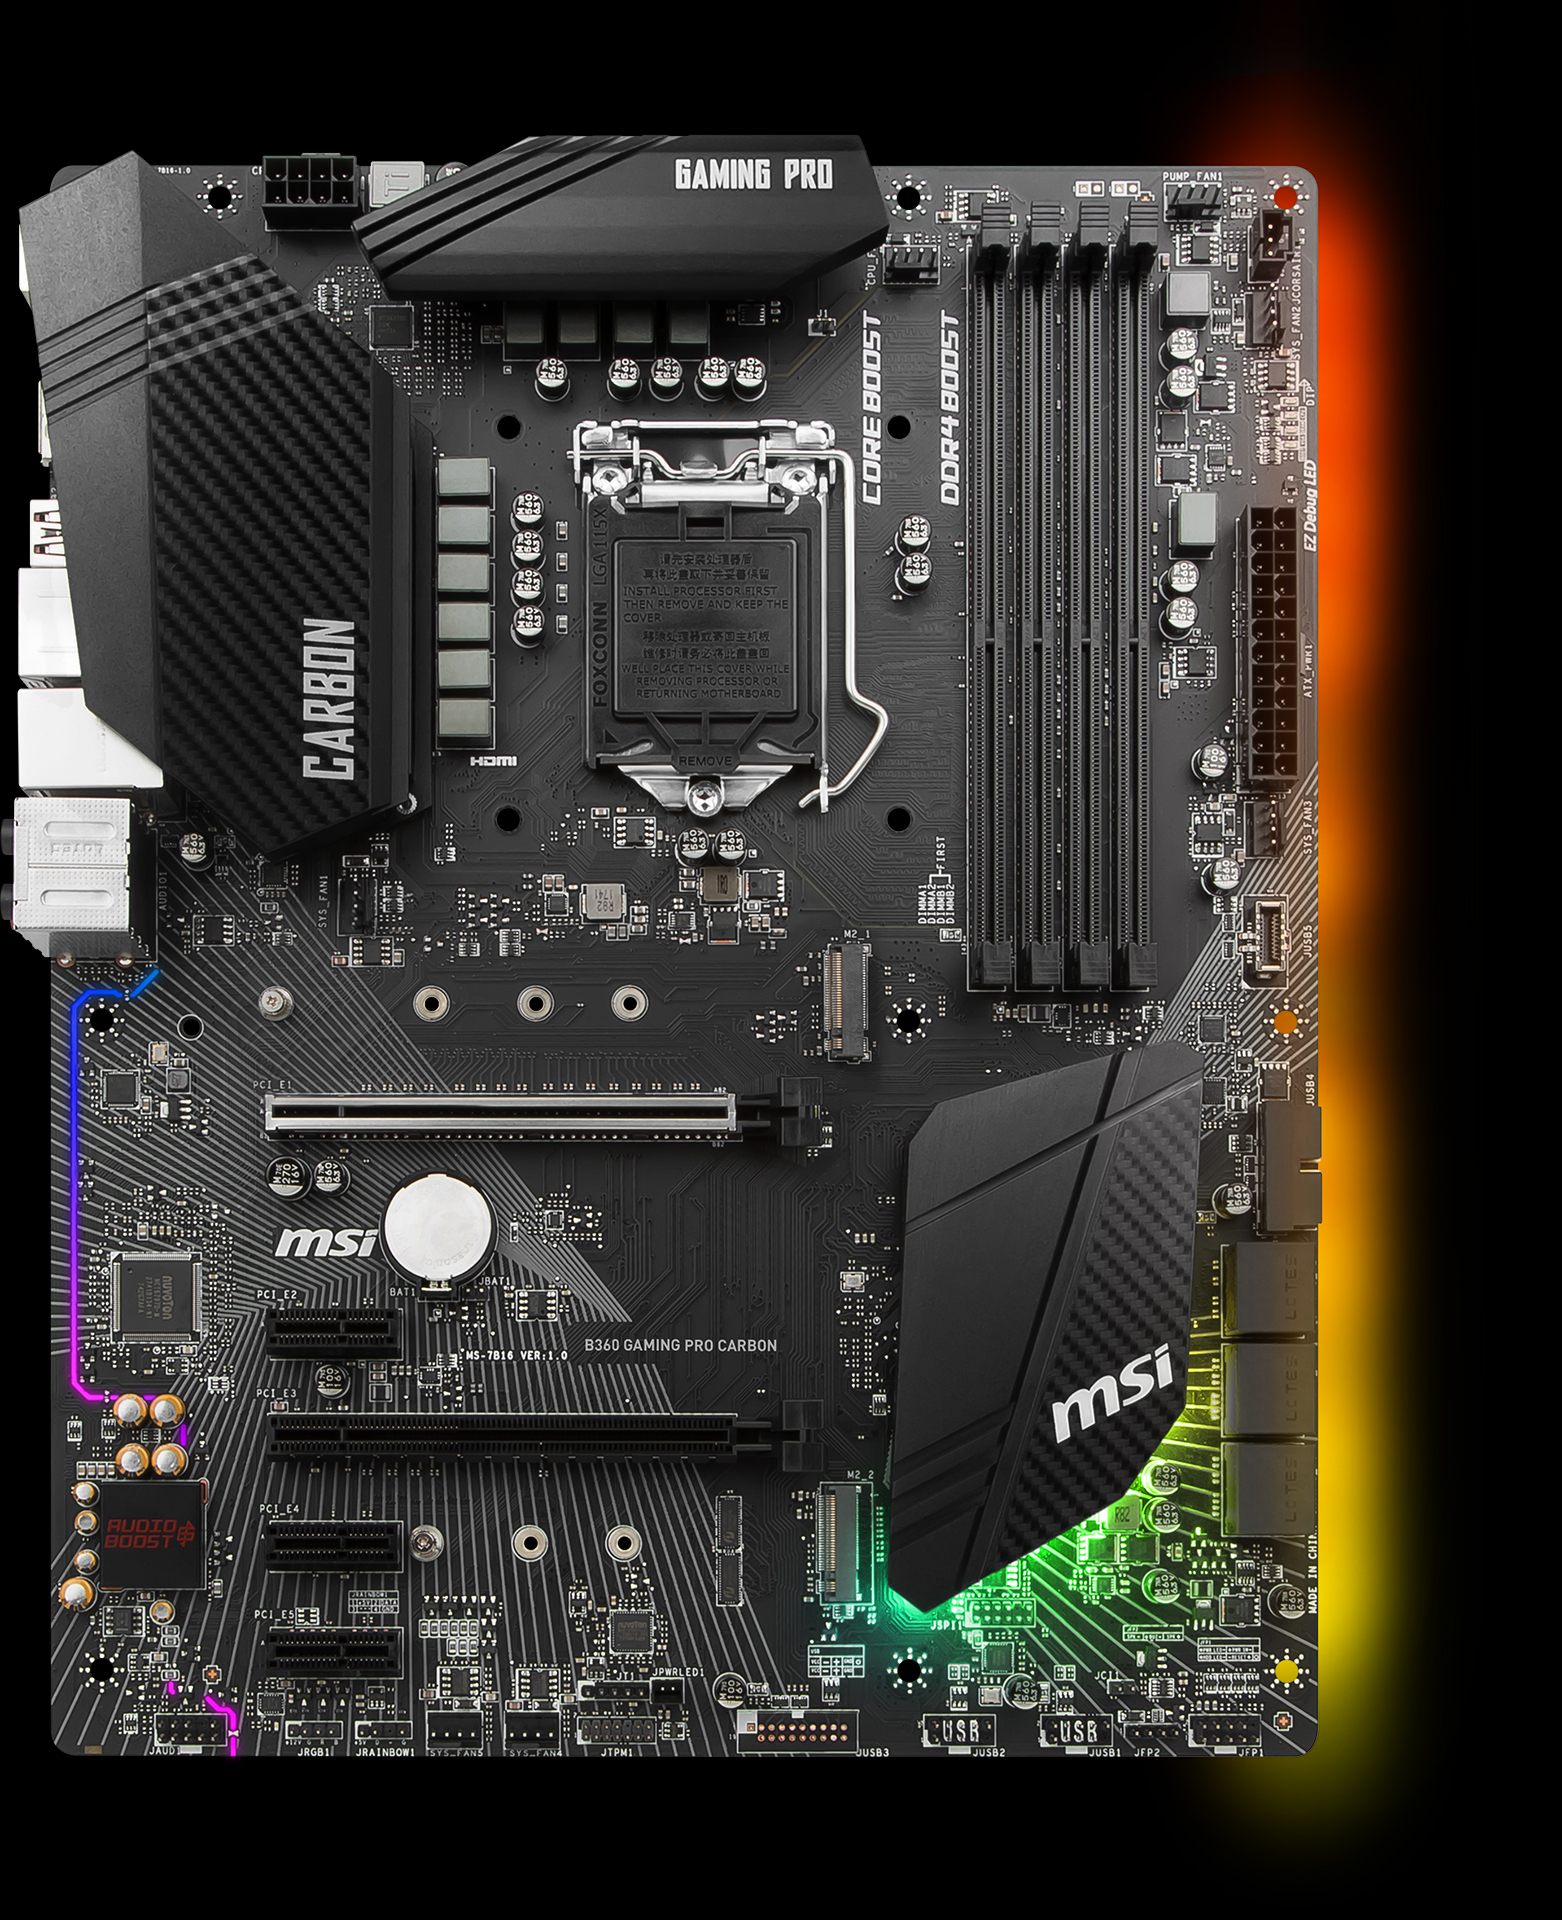 B360 GAMING PRO CARBON | Motherboard - The world leader in